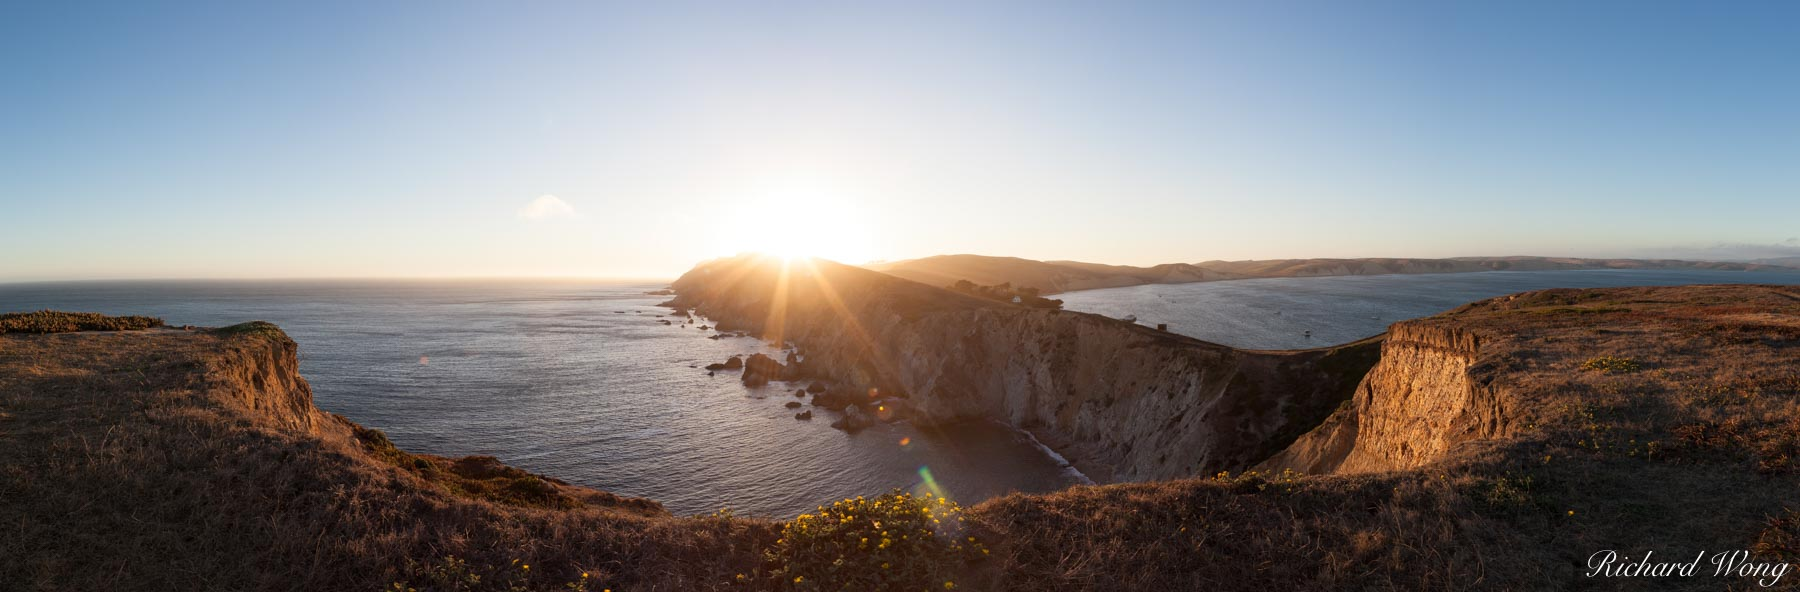 Chimney Rock Panoramic at Sunset, Point Reyes National Seashore, California, photo, photo